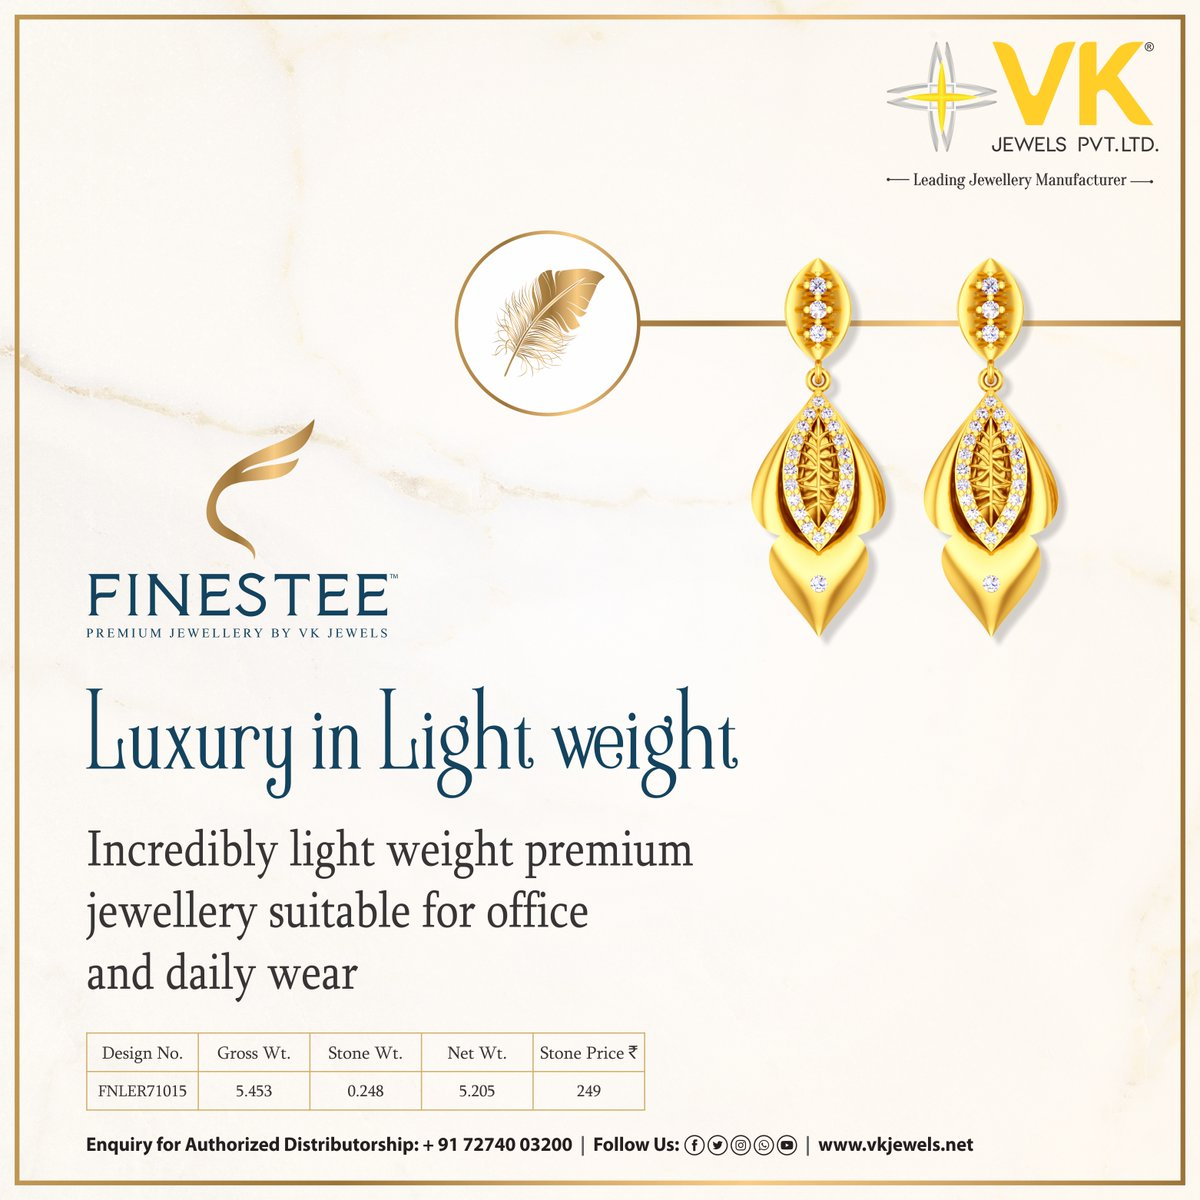 Finestee presents exclusive and high-end jewellery that is light as feather and apt for work and play. Download our app to explore collection and place an order.   #LightWeightGoldJewellery #MillenialJewellery#BestGoldJewelery #Finestee #VKJewels